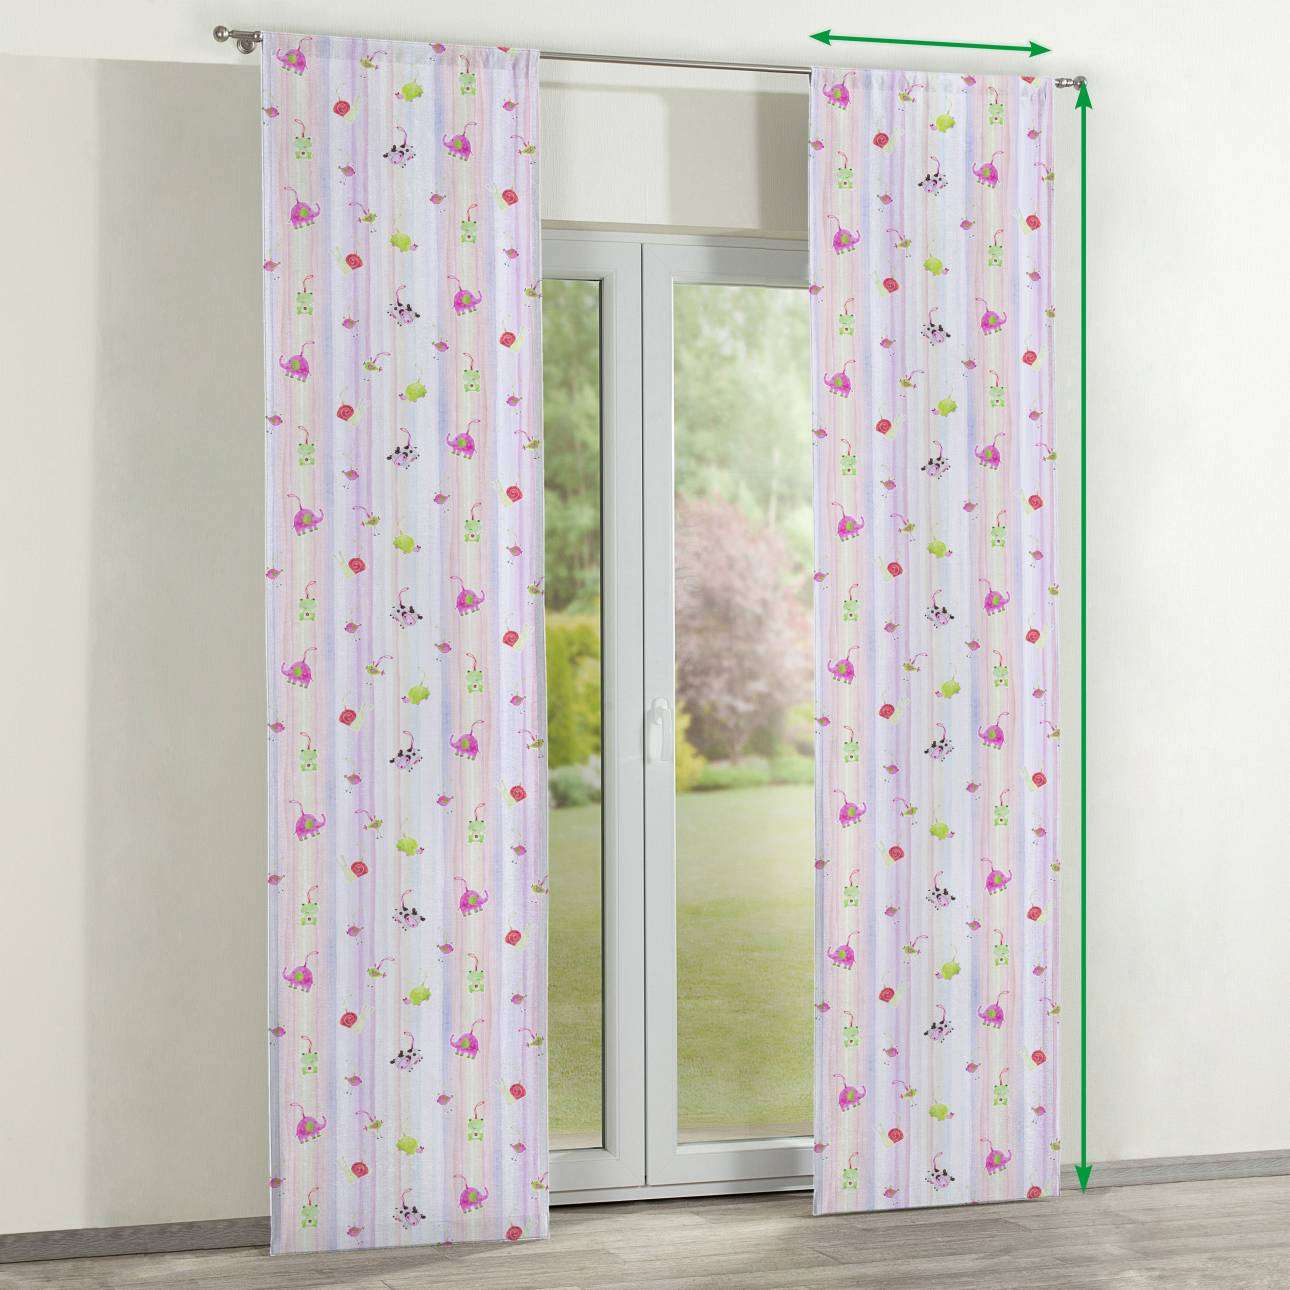 Slot panel curtains – Set of 2 in collection Apanona, fabric: 151-05